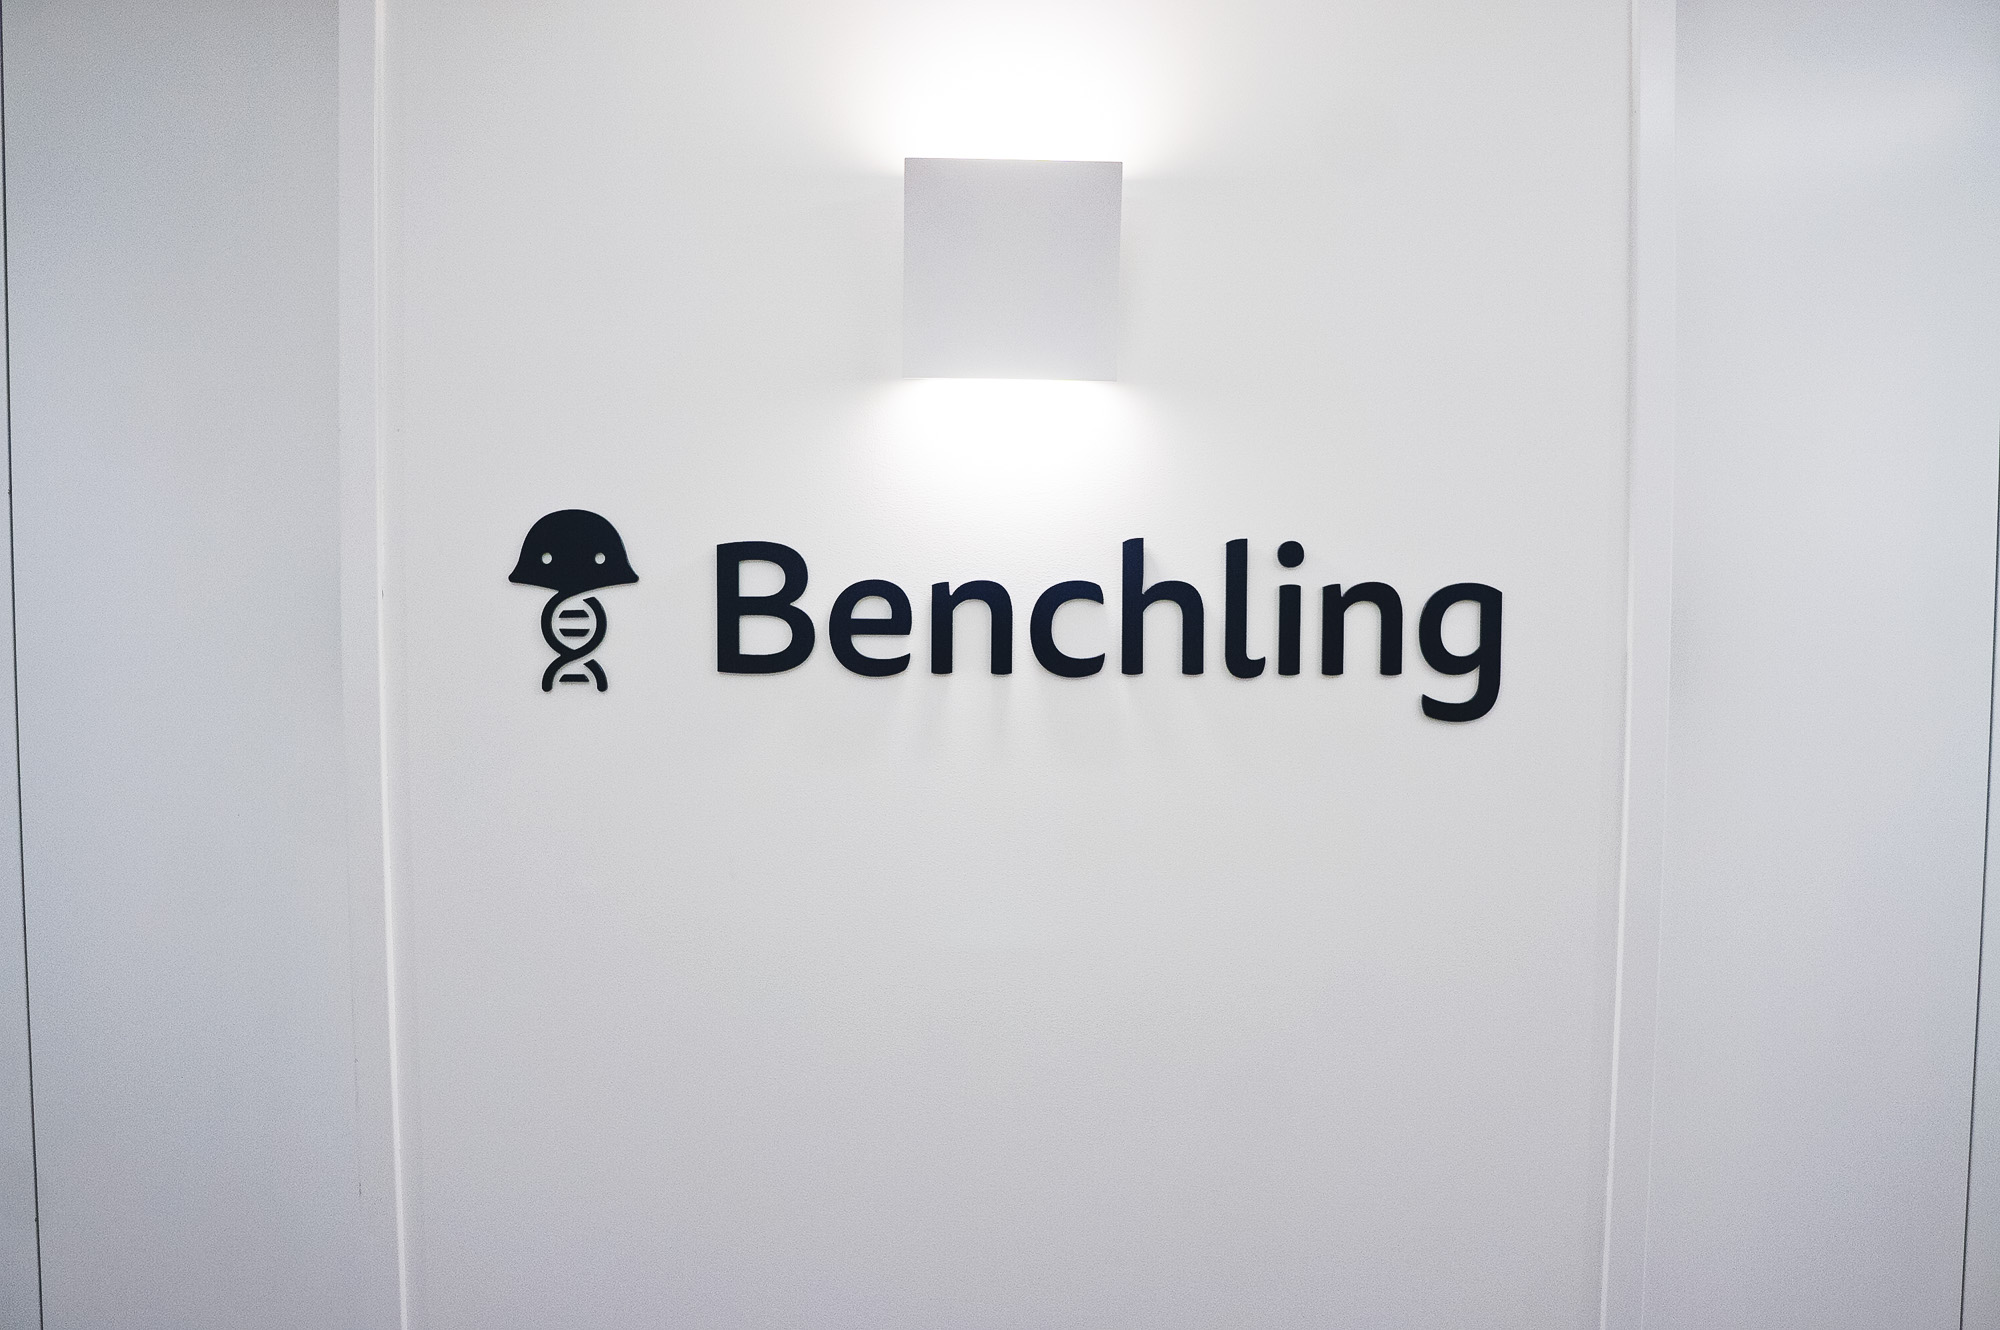 Navy blue elevator vestibule sign for Benchling, a San Francisco based company working on a unified platform to accelerate, measure, and forecast R&D from discovery through bioprocessing.